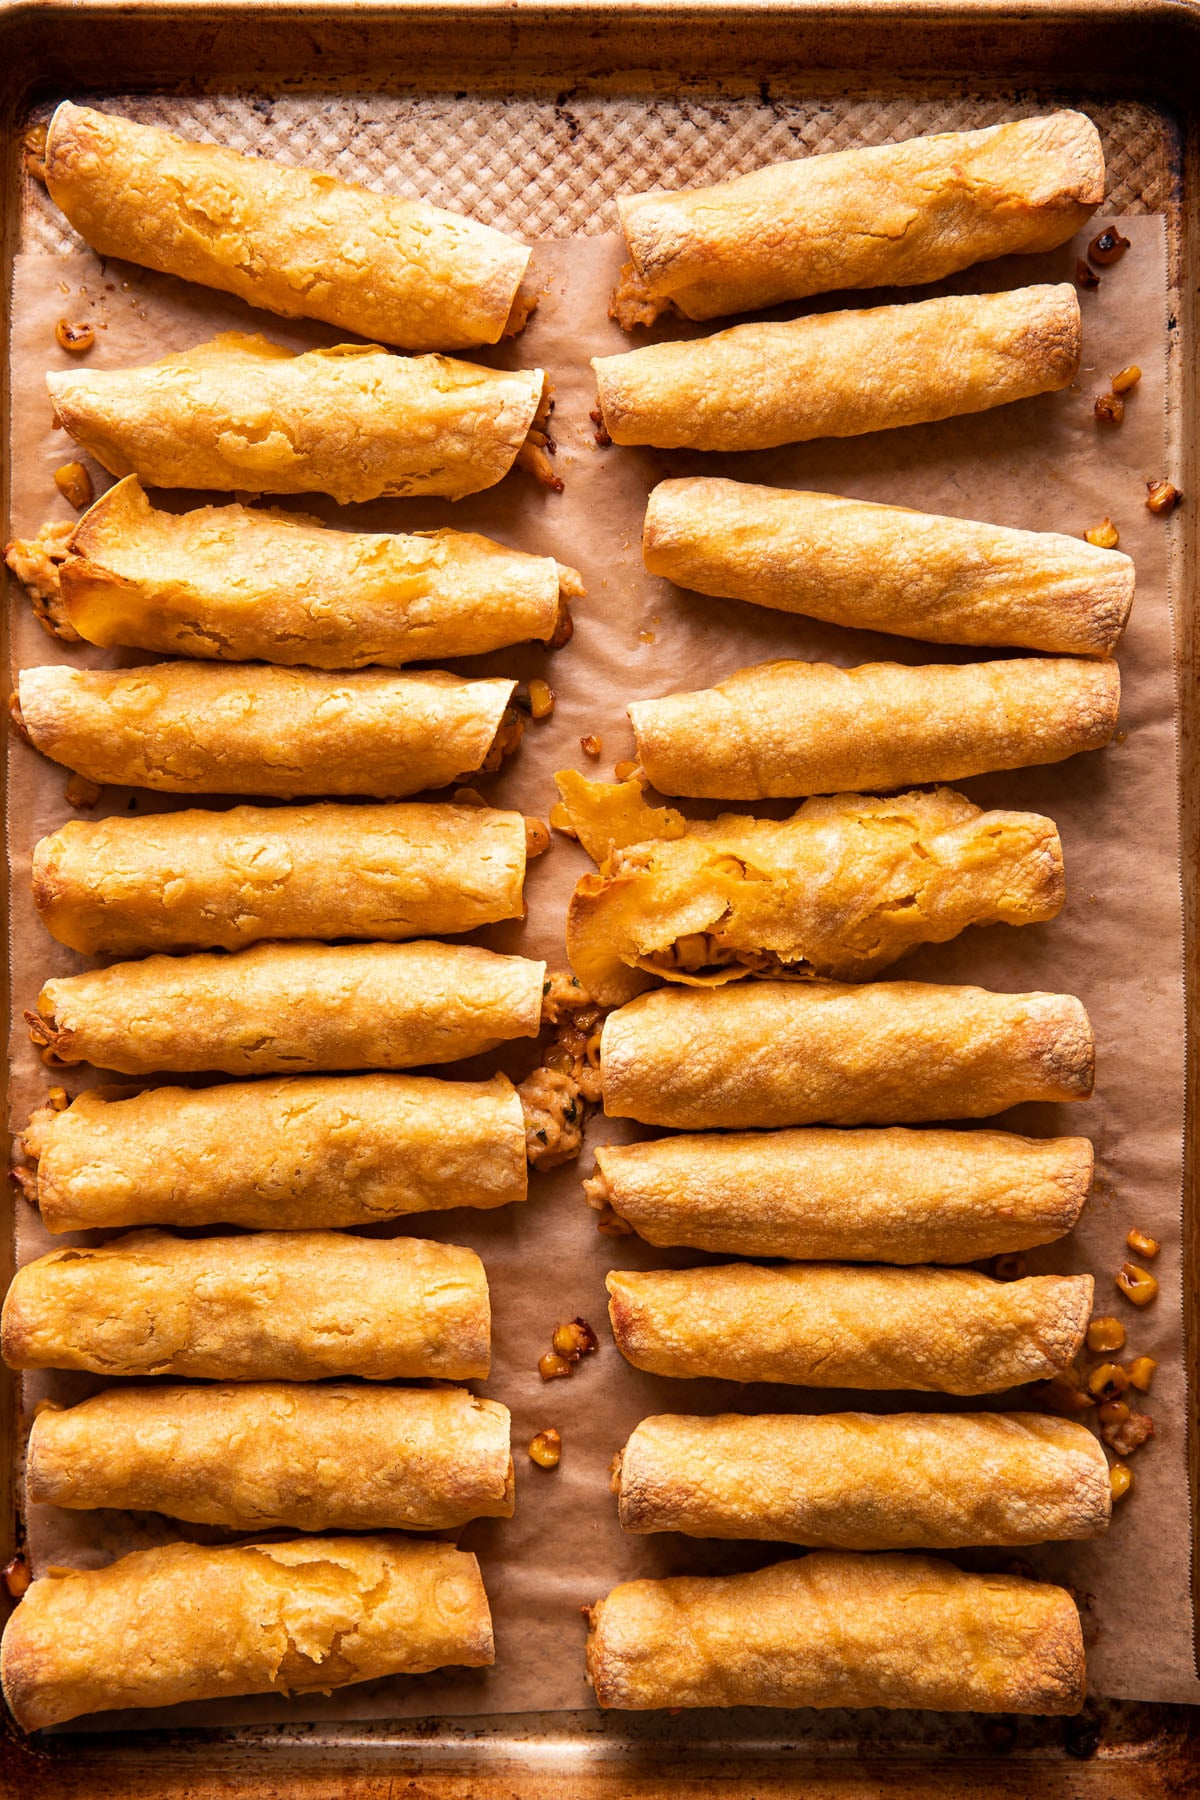 two rows of taquitos on a baking sheet after being baked